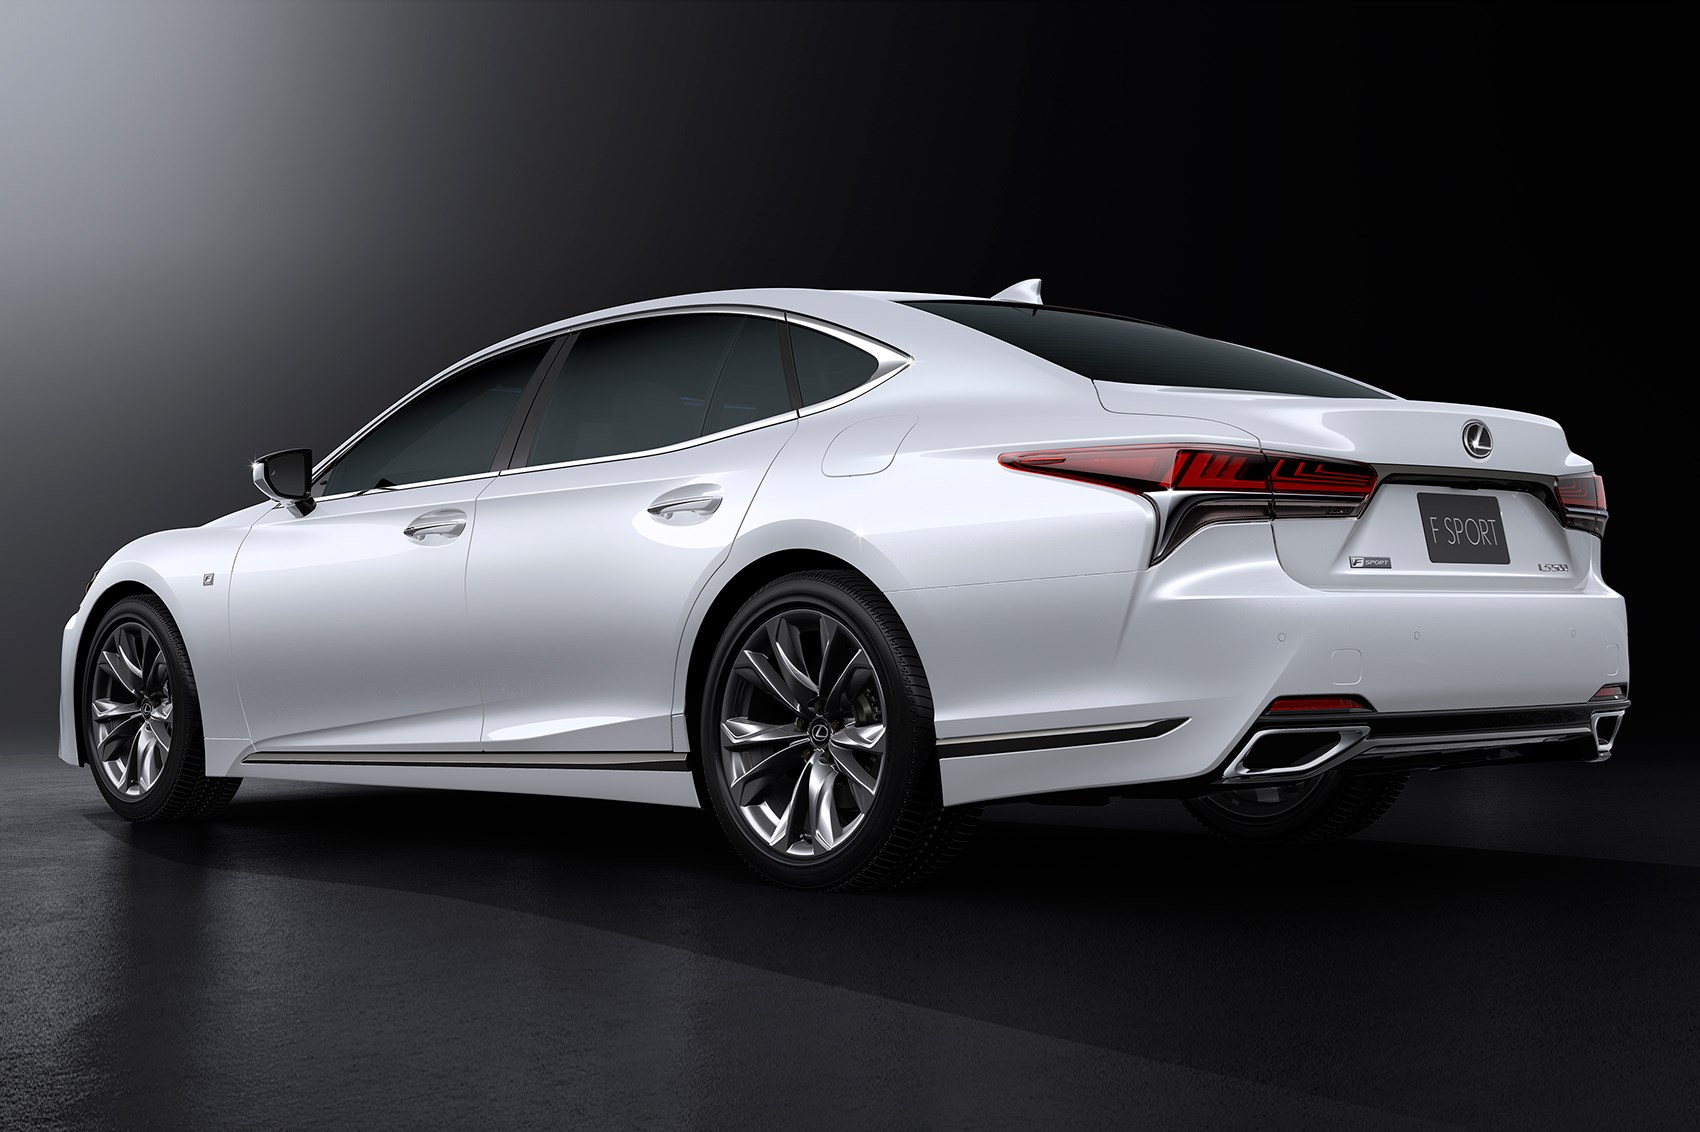 Lexus LS 500 F Sport unveiled at NYIAS 2017 by CAR Magazine